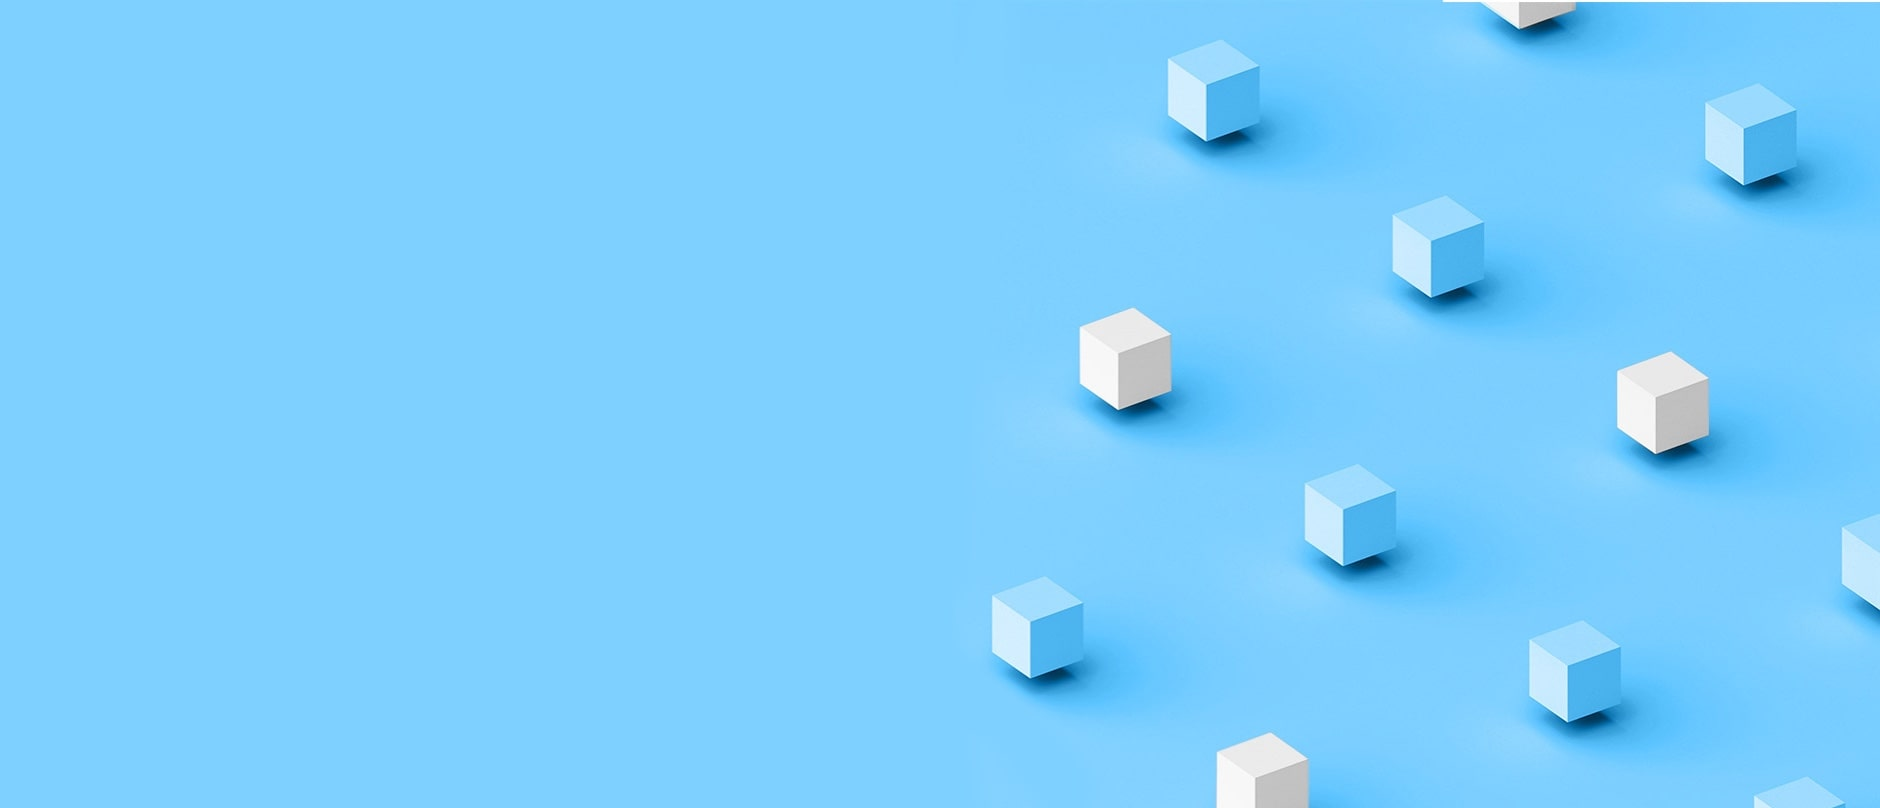 blue background with blue and white alternating cubes floating on the right half of the screen